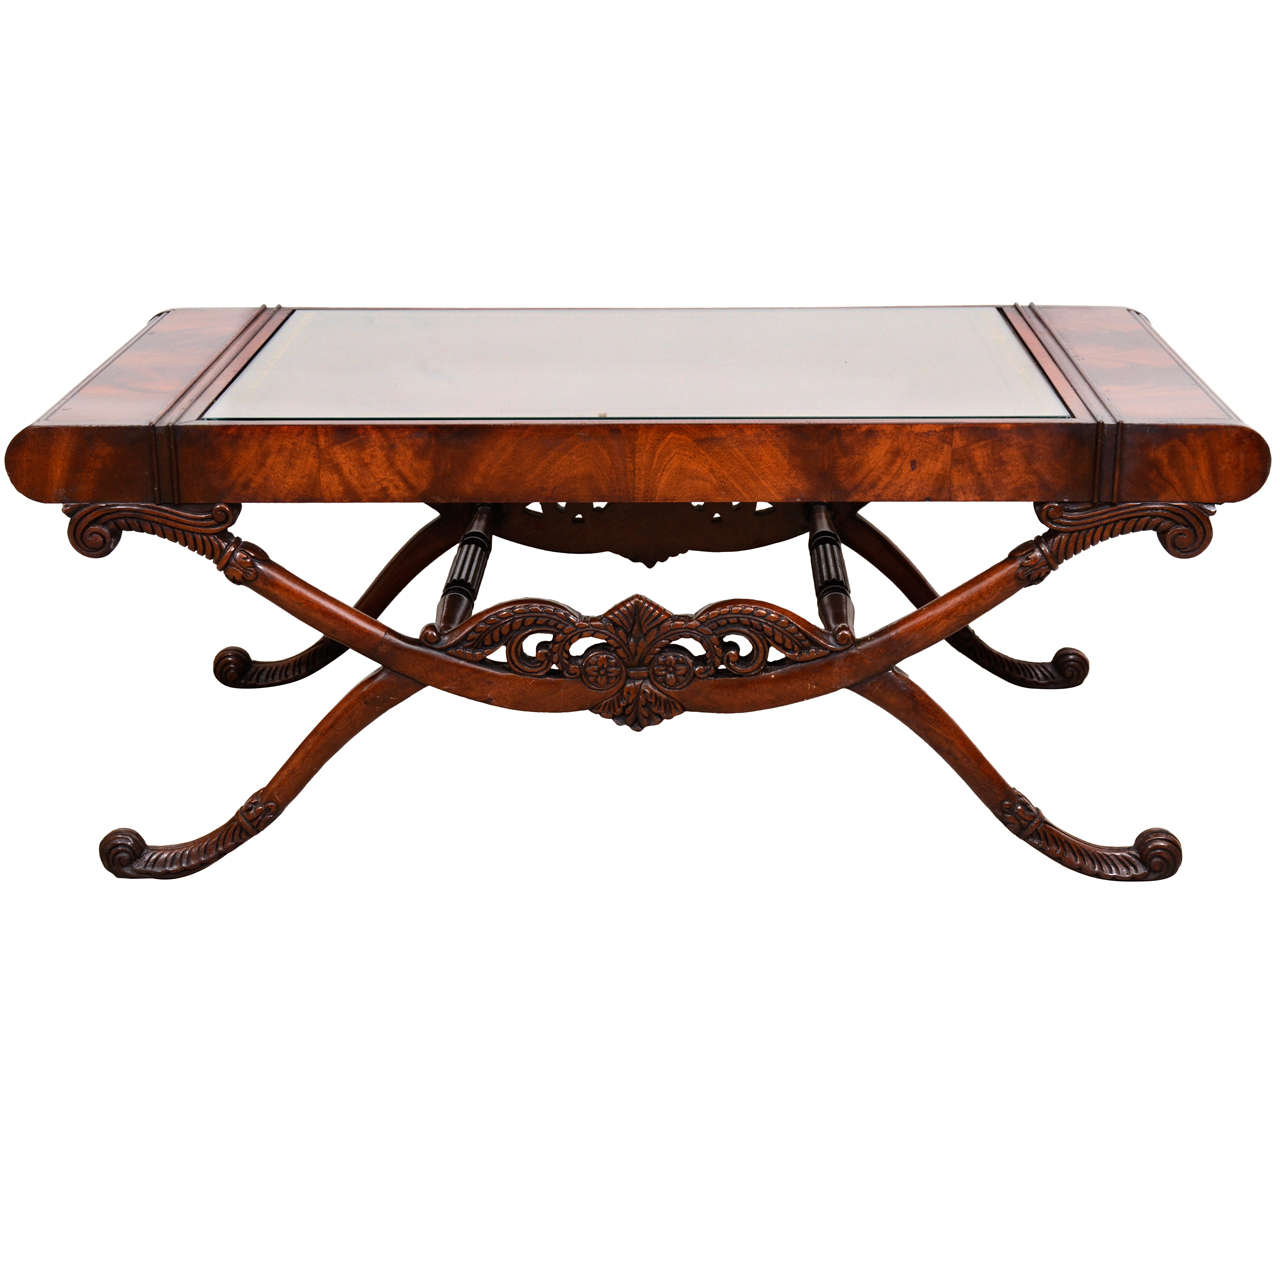 American Regency Style Mahogany And Leather Top Coffee Table At 1stdibs